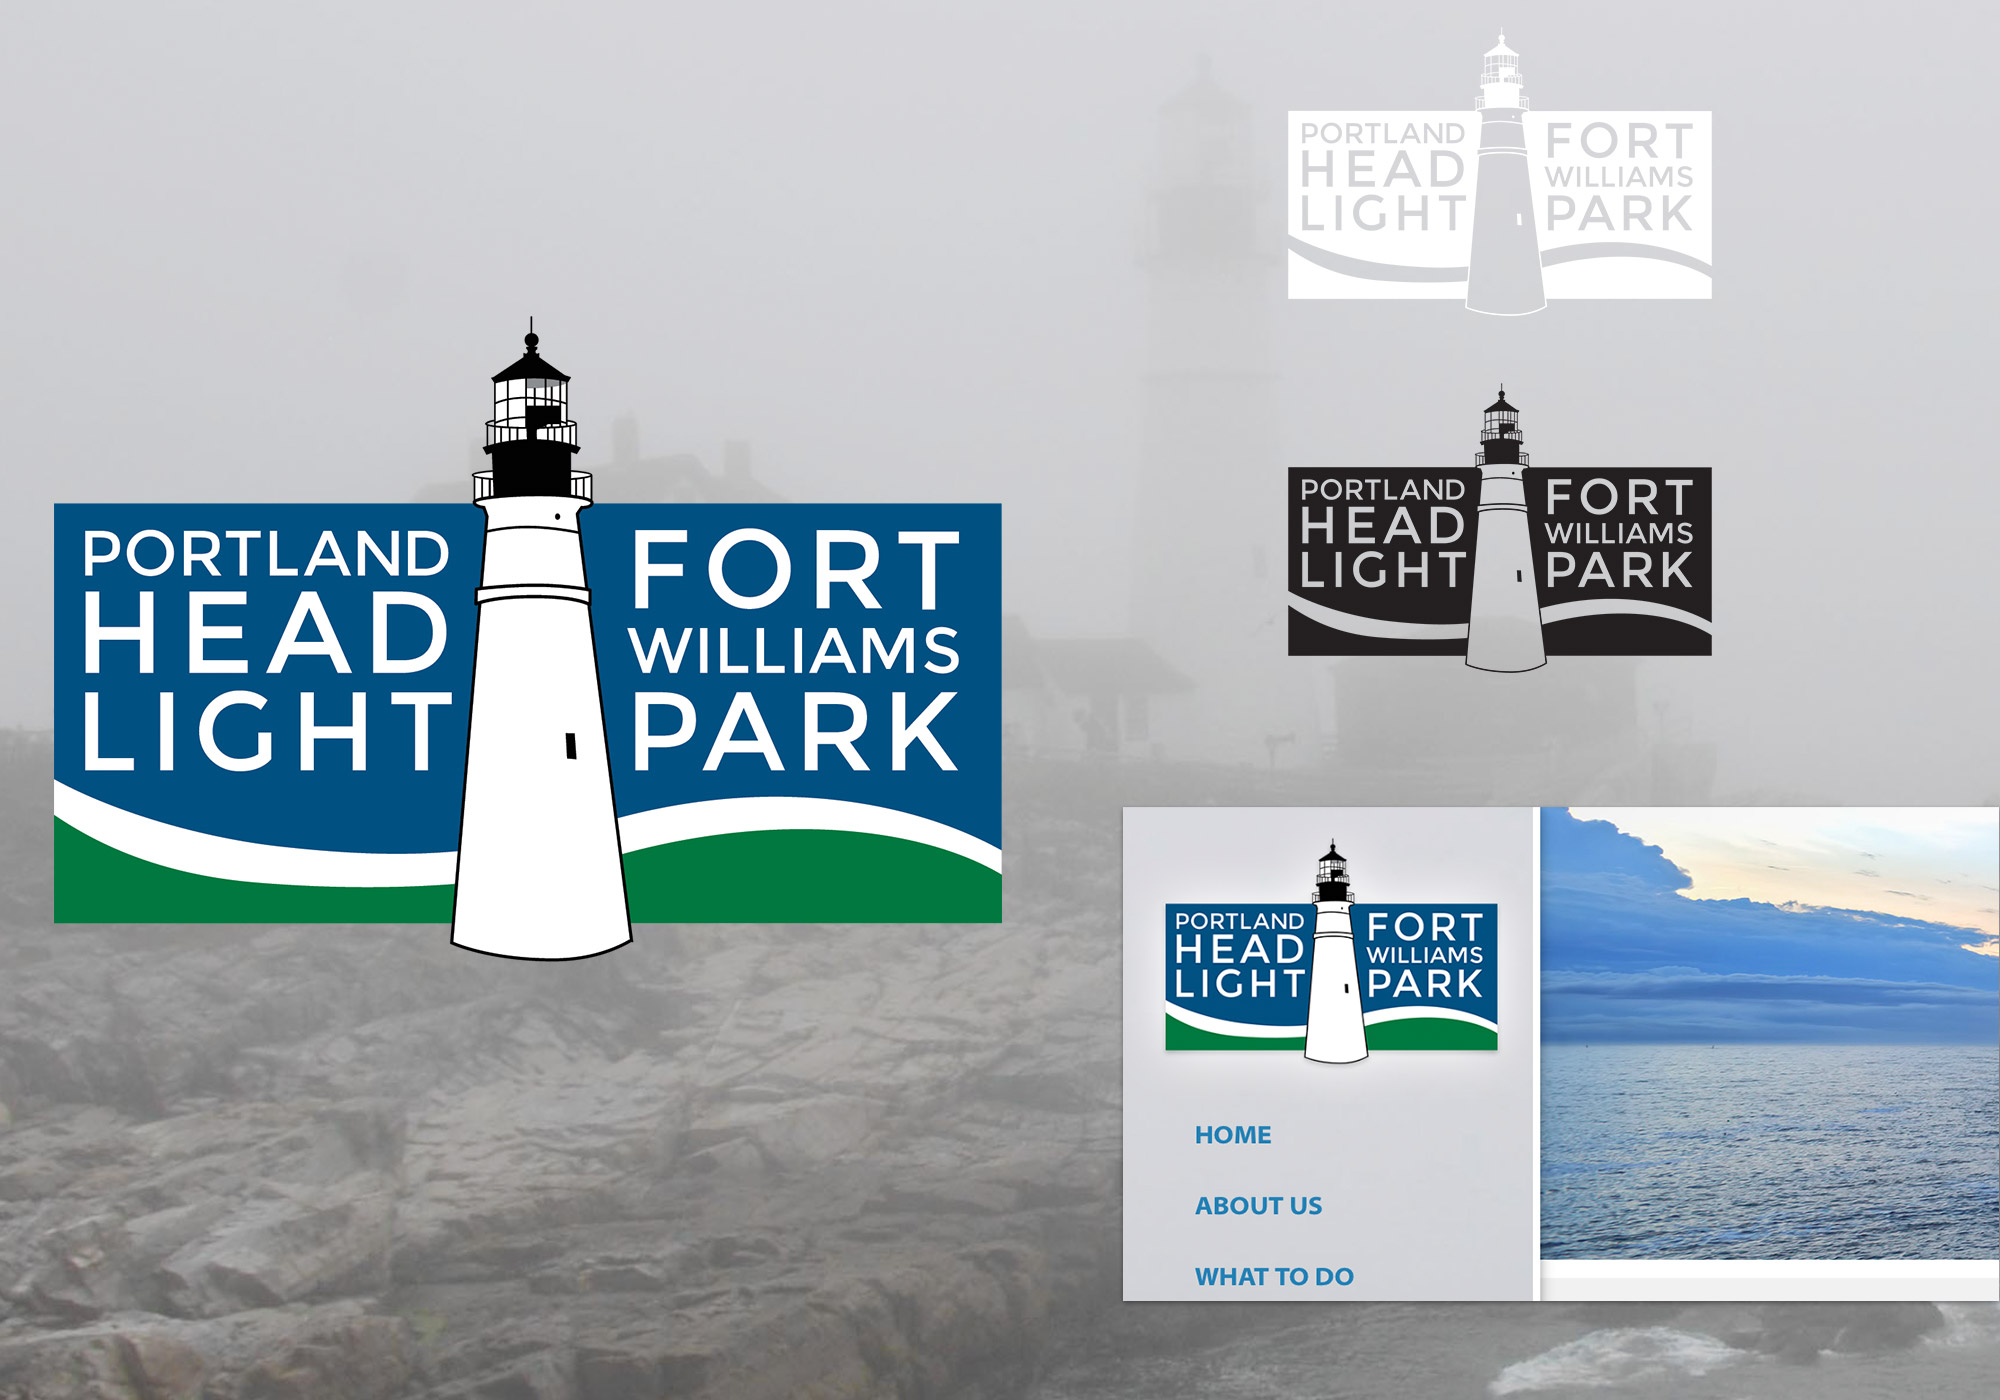 SlickFish designed a new logo for the oldest lighthouse in Maine, The Portland Head Light and the adjacent Fort Williams Park.